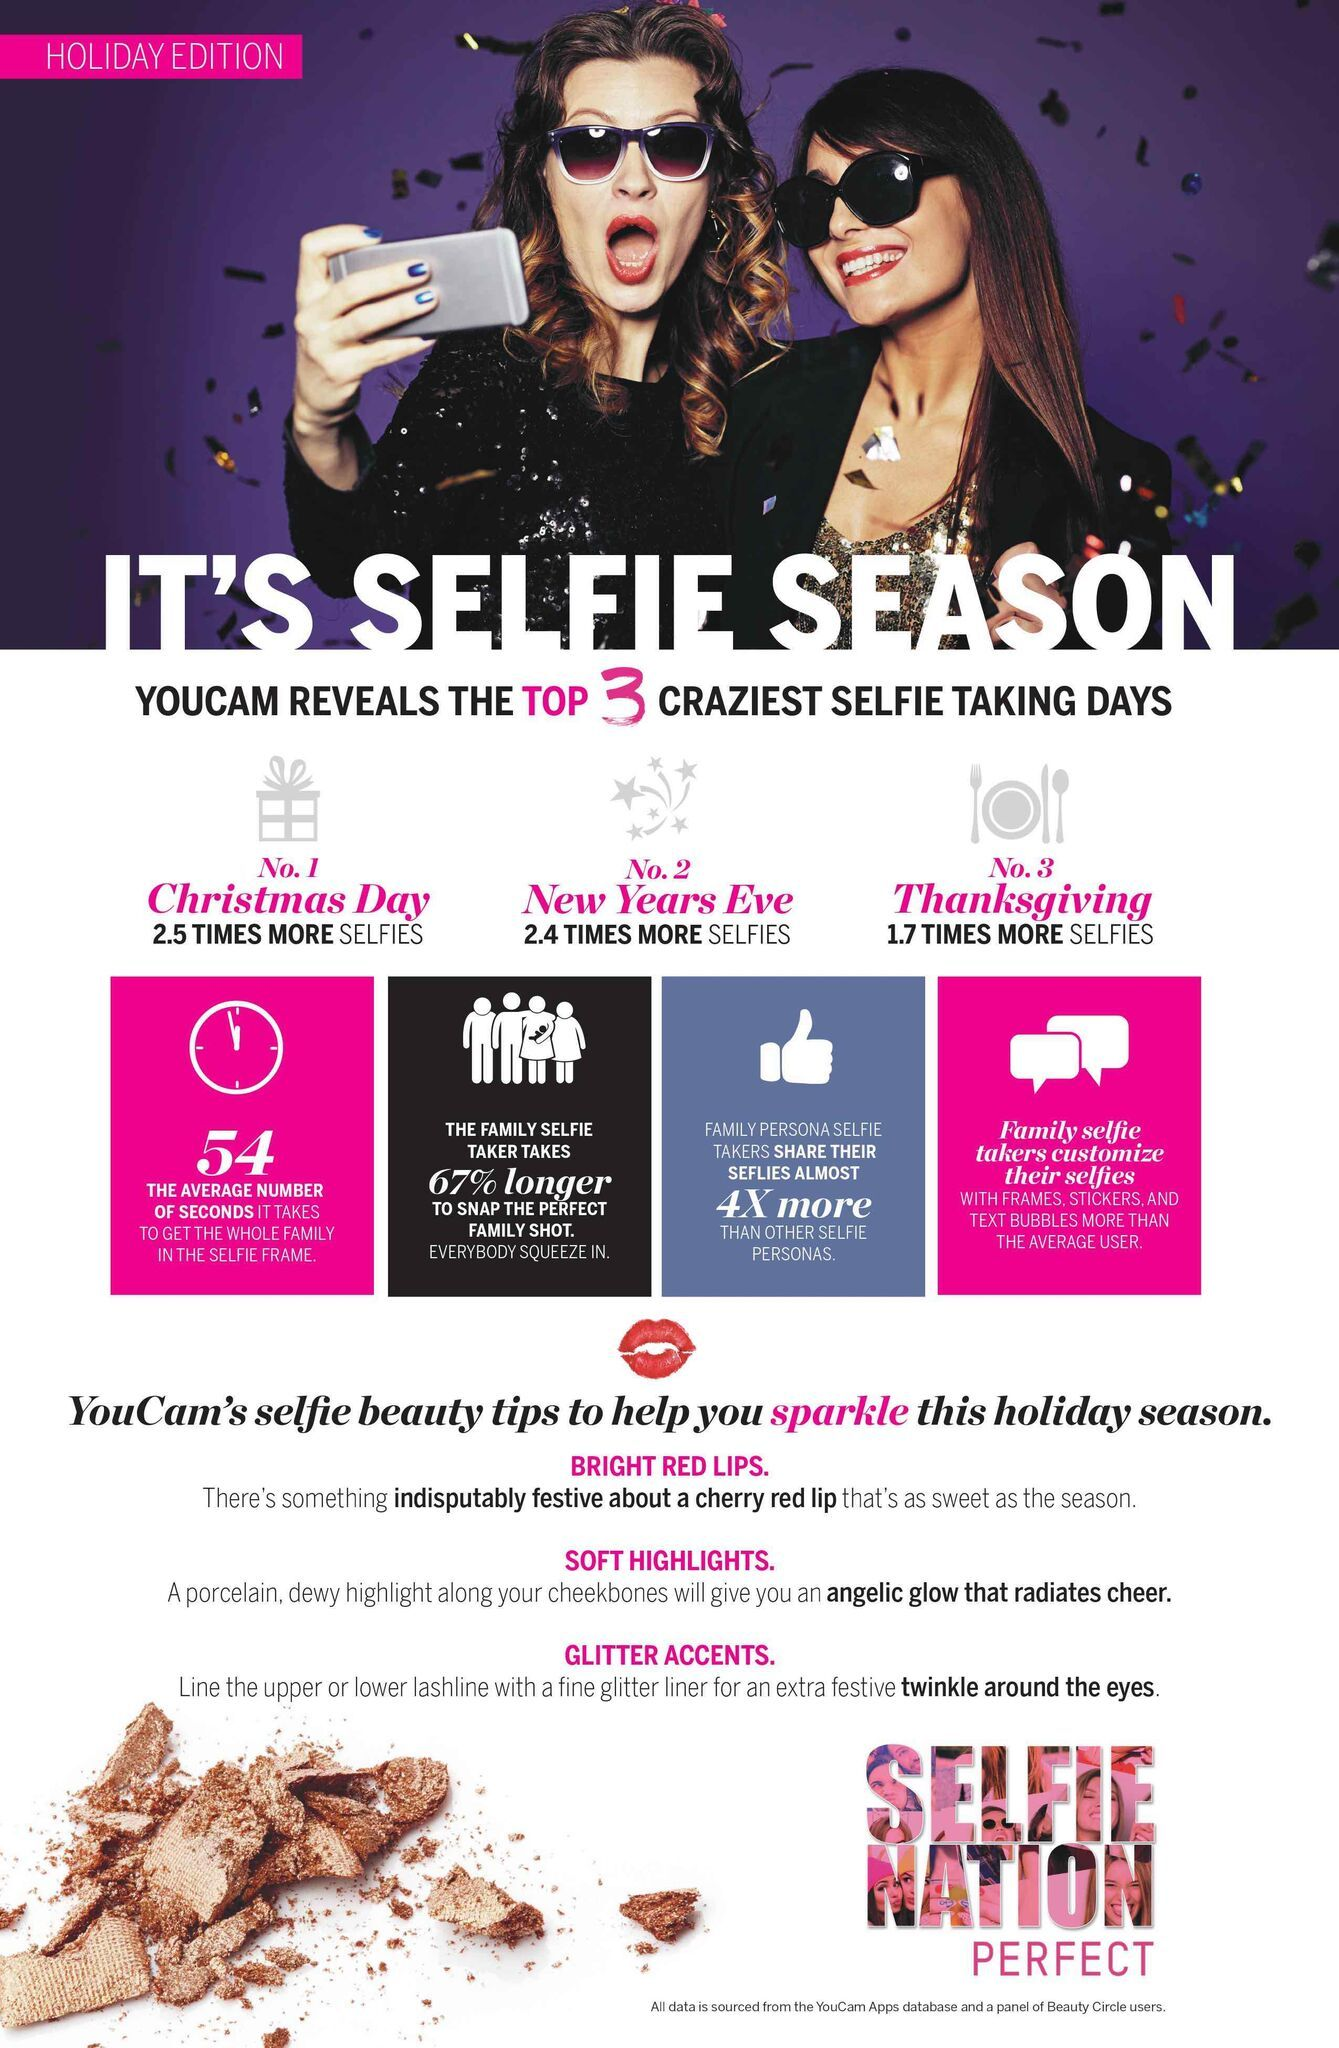 Perfect Corp brings you mobile beauty with top selfie